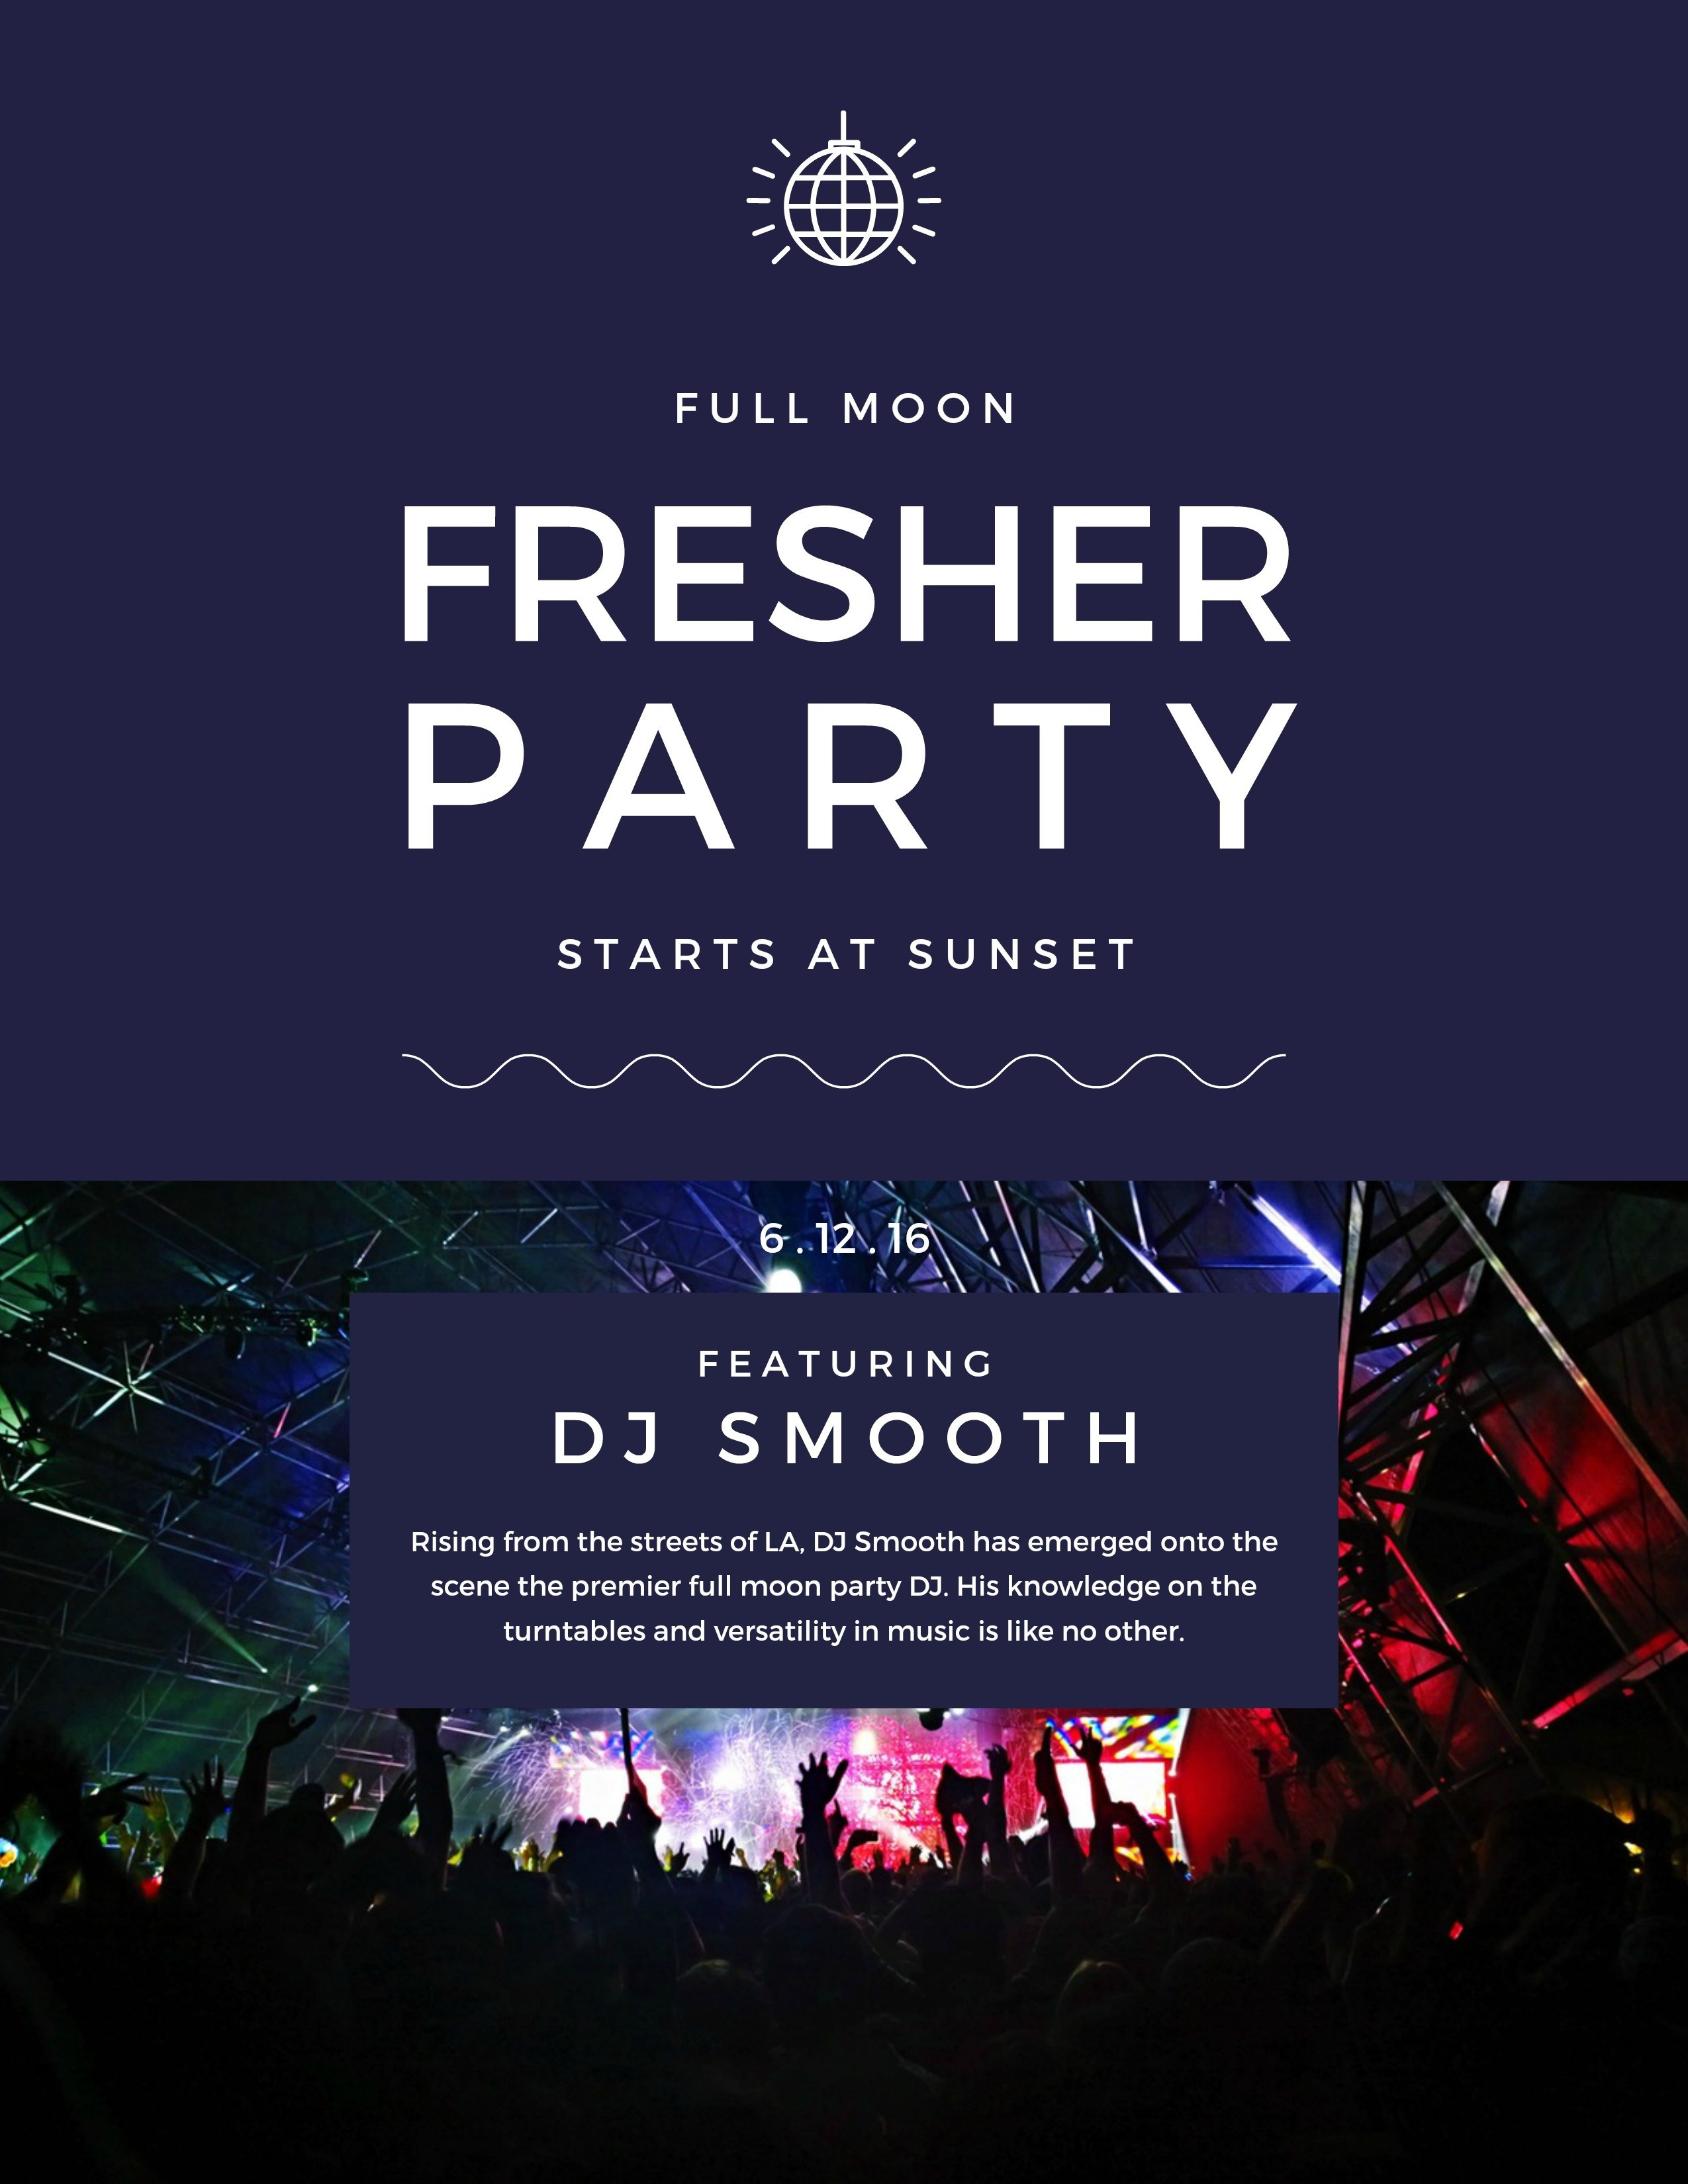 What are some creative ideas for hosting a fresher's party at